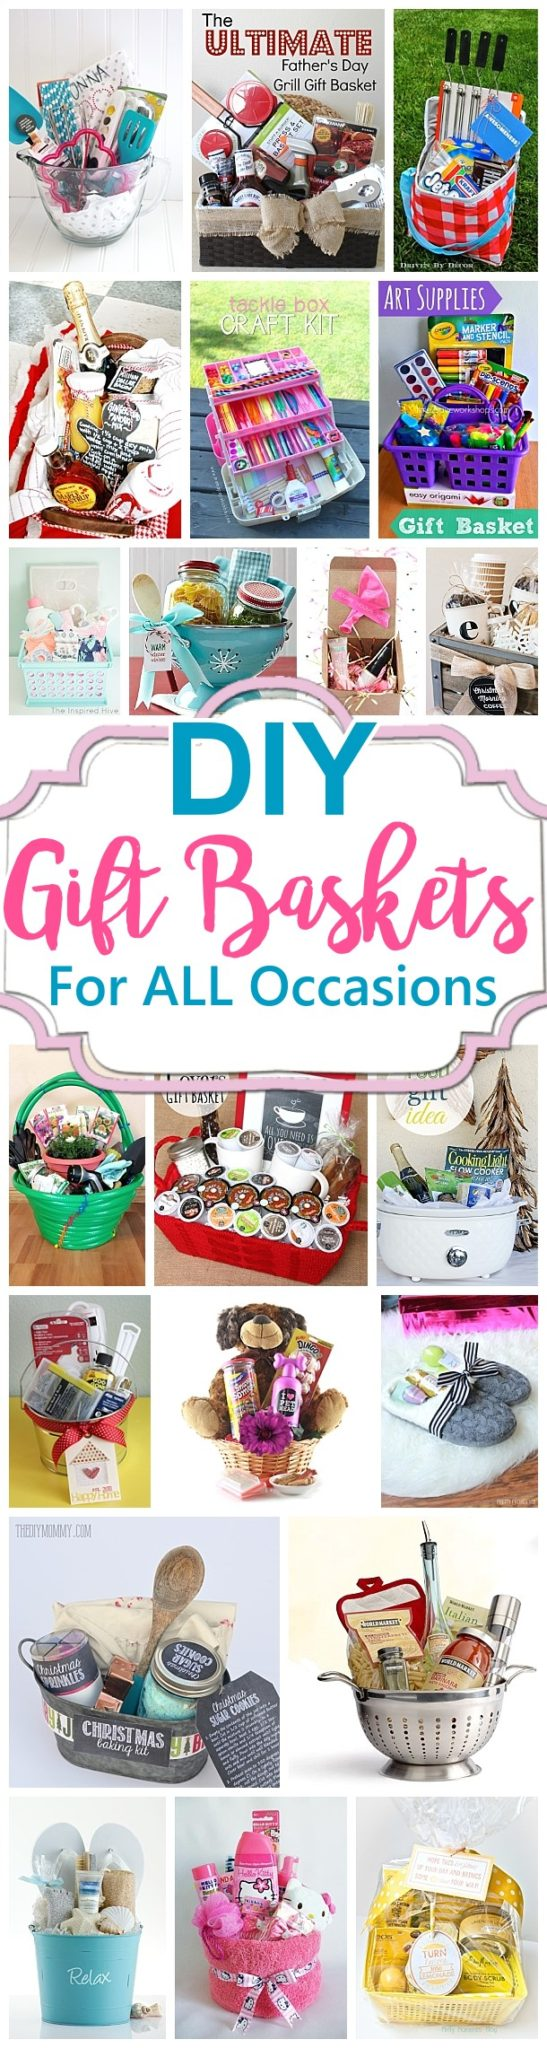 Do it Yourself Gift Baskets Ideas for Any and All Occasions - Perfect for Christmas - Birthdays - Thank You Gifts - Housewarmings - Baby Showers or anytime